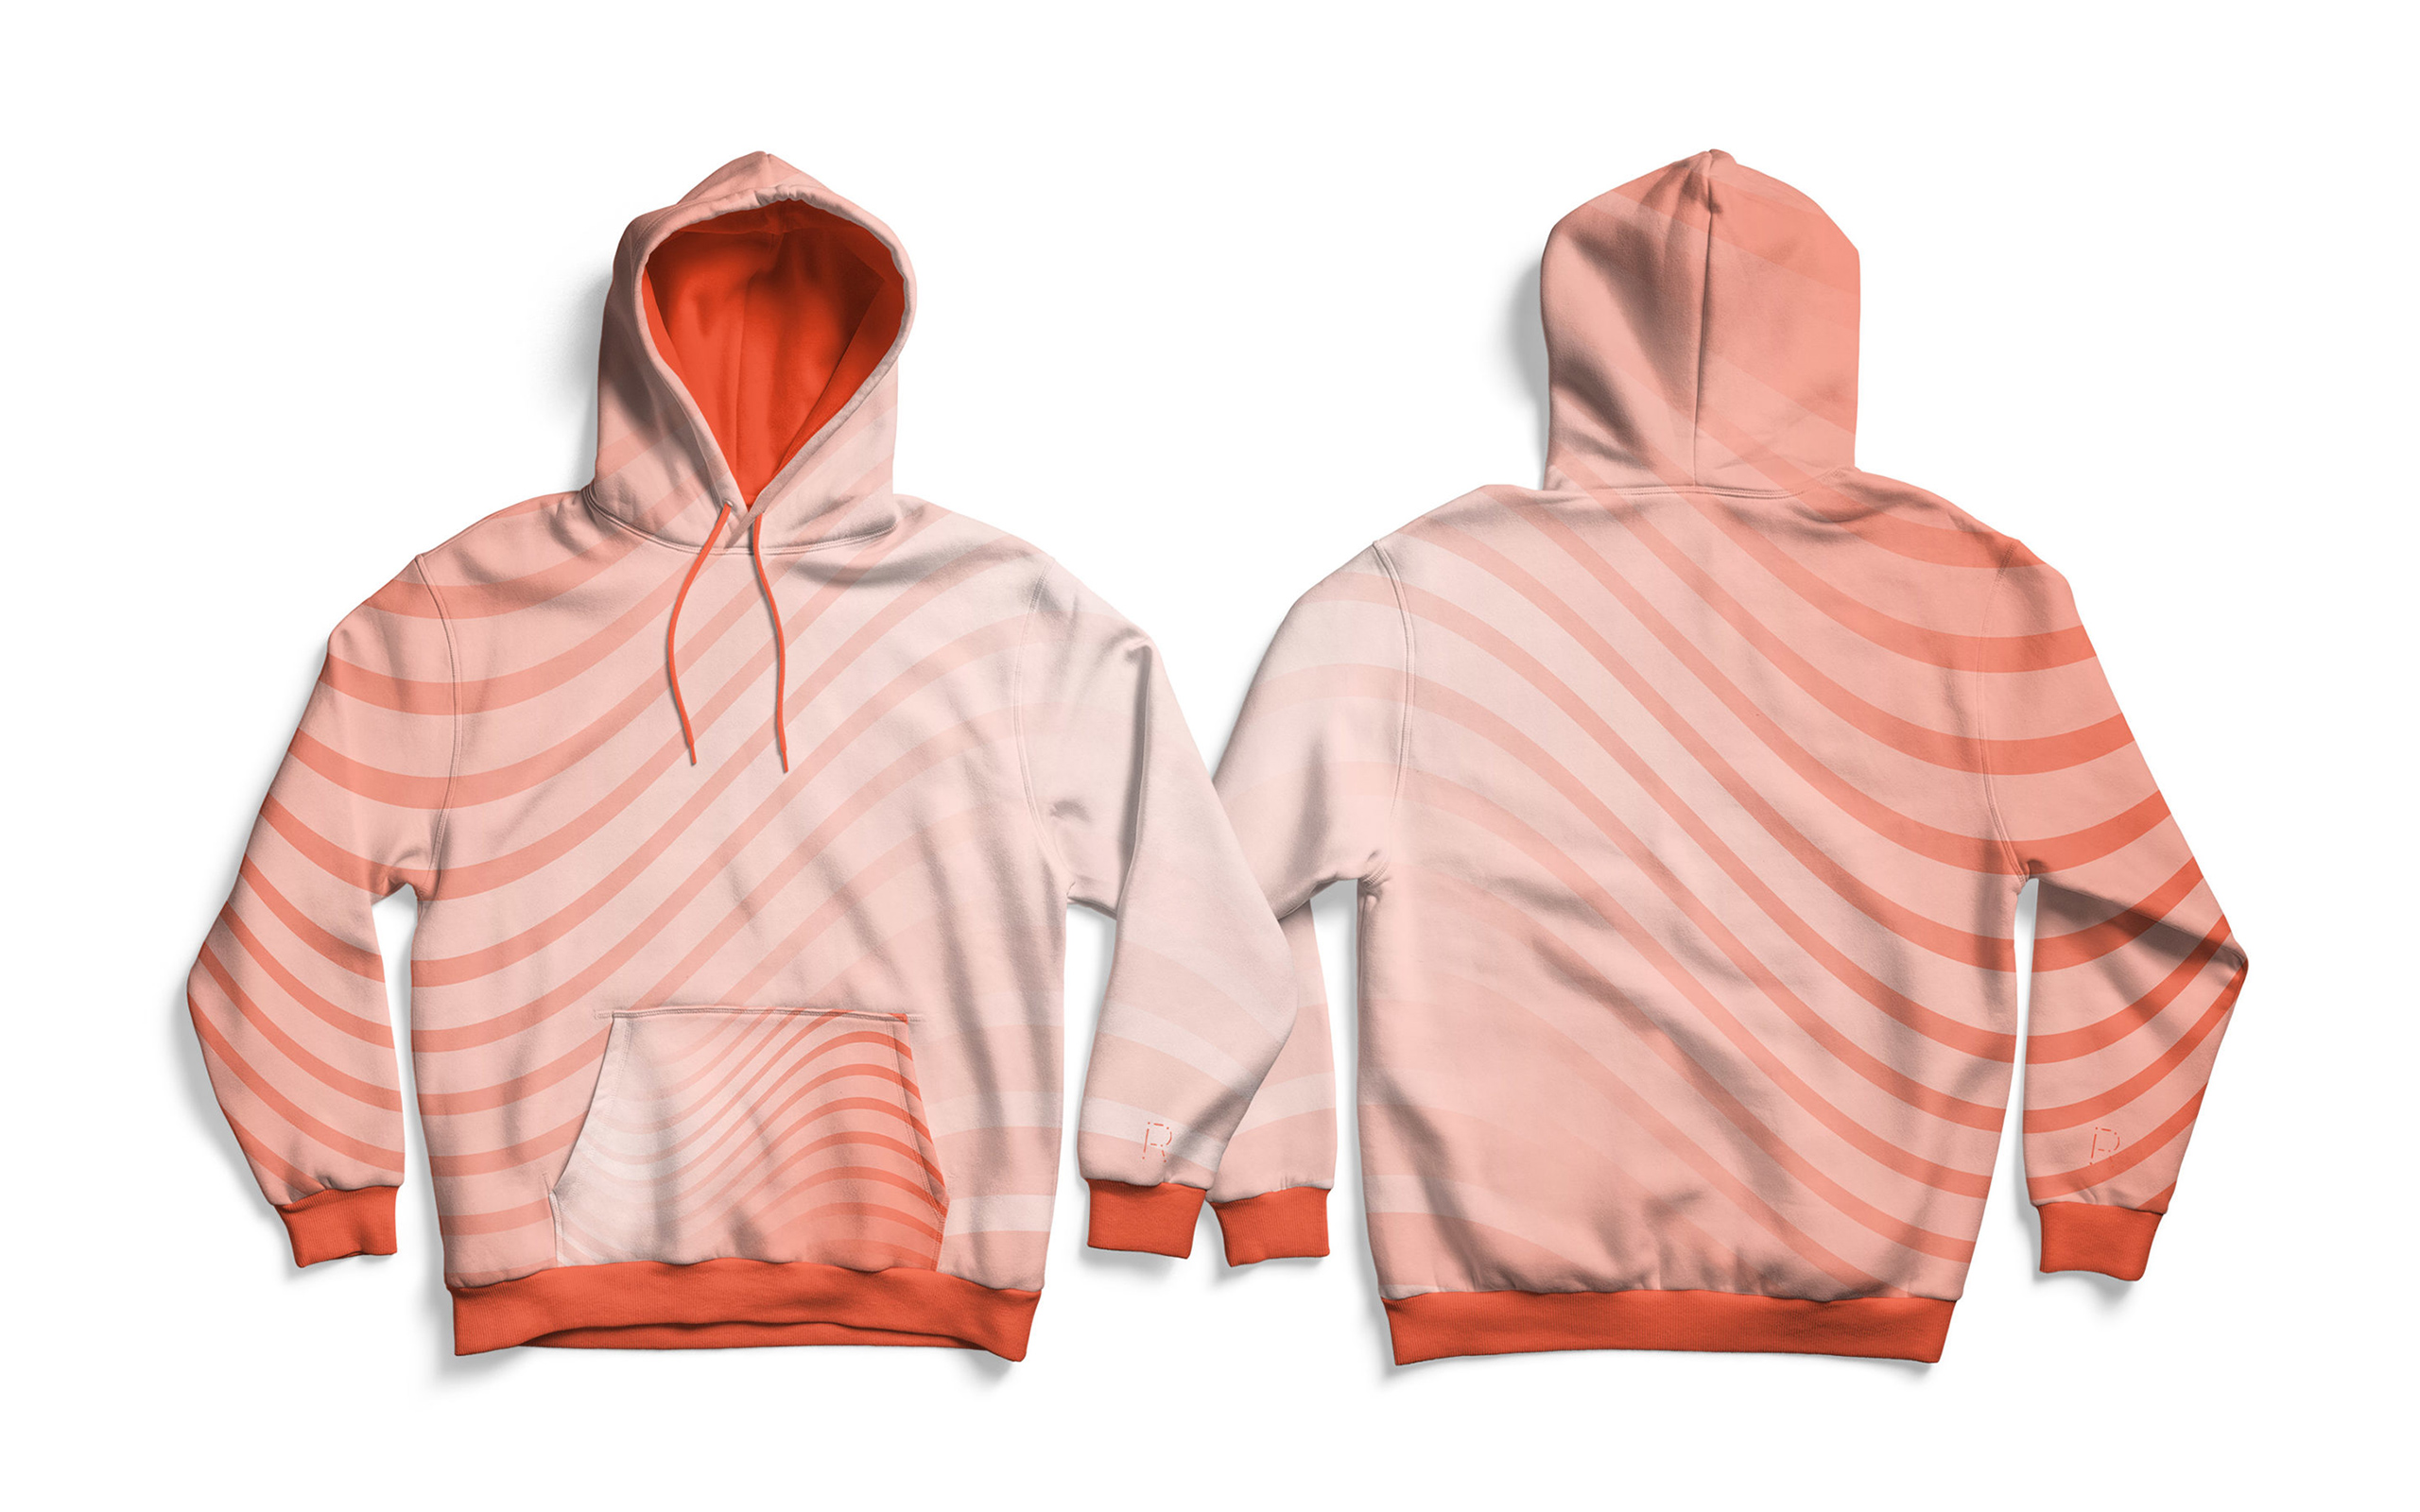 Radiance-Hoodies-scaled